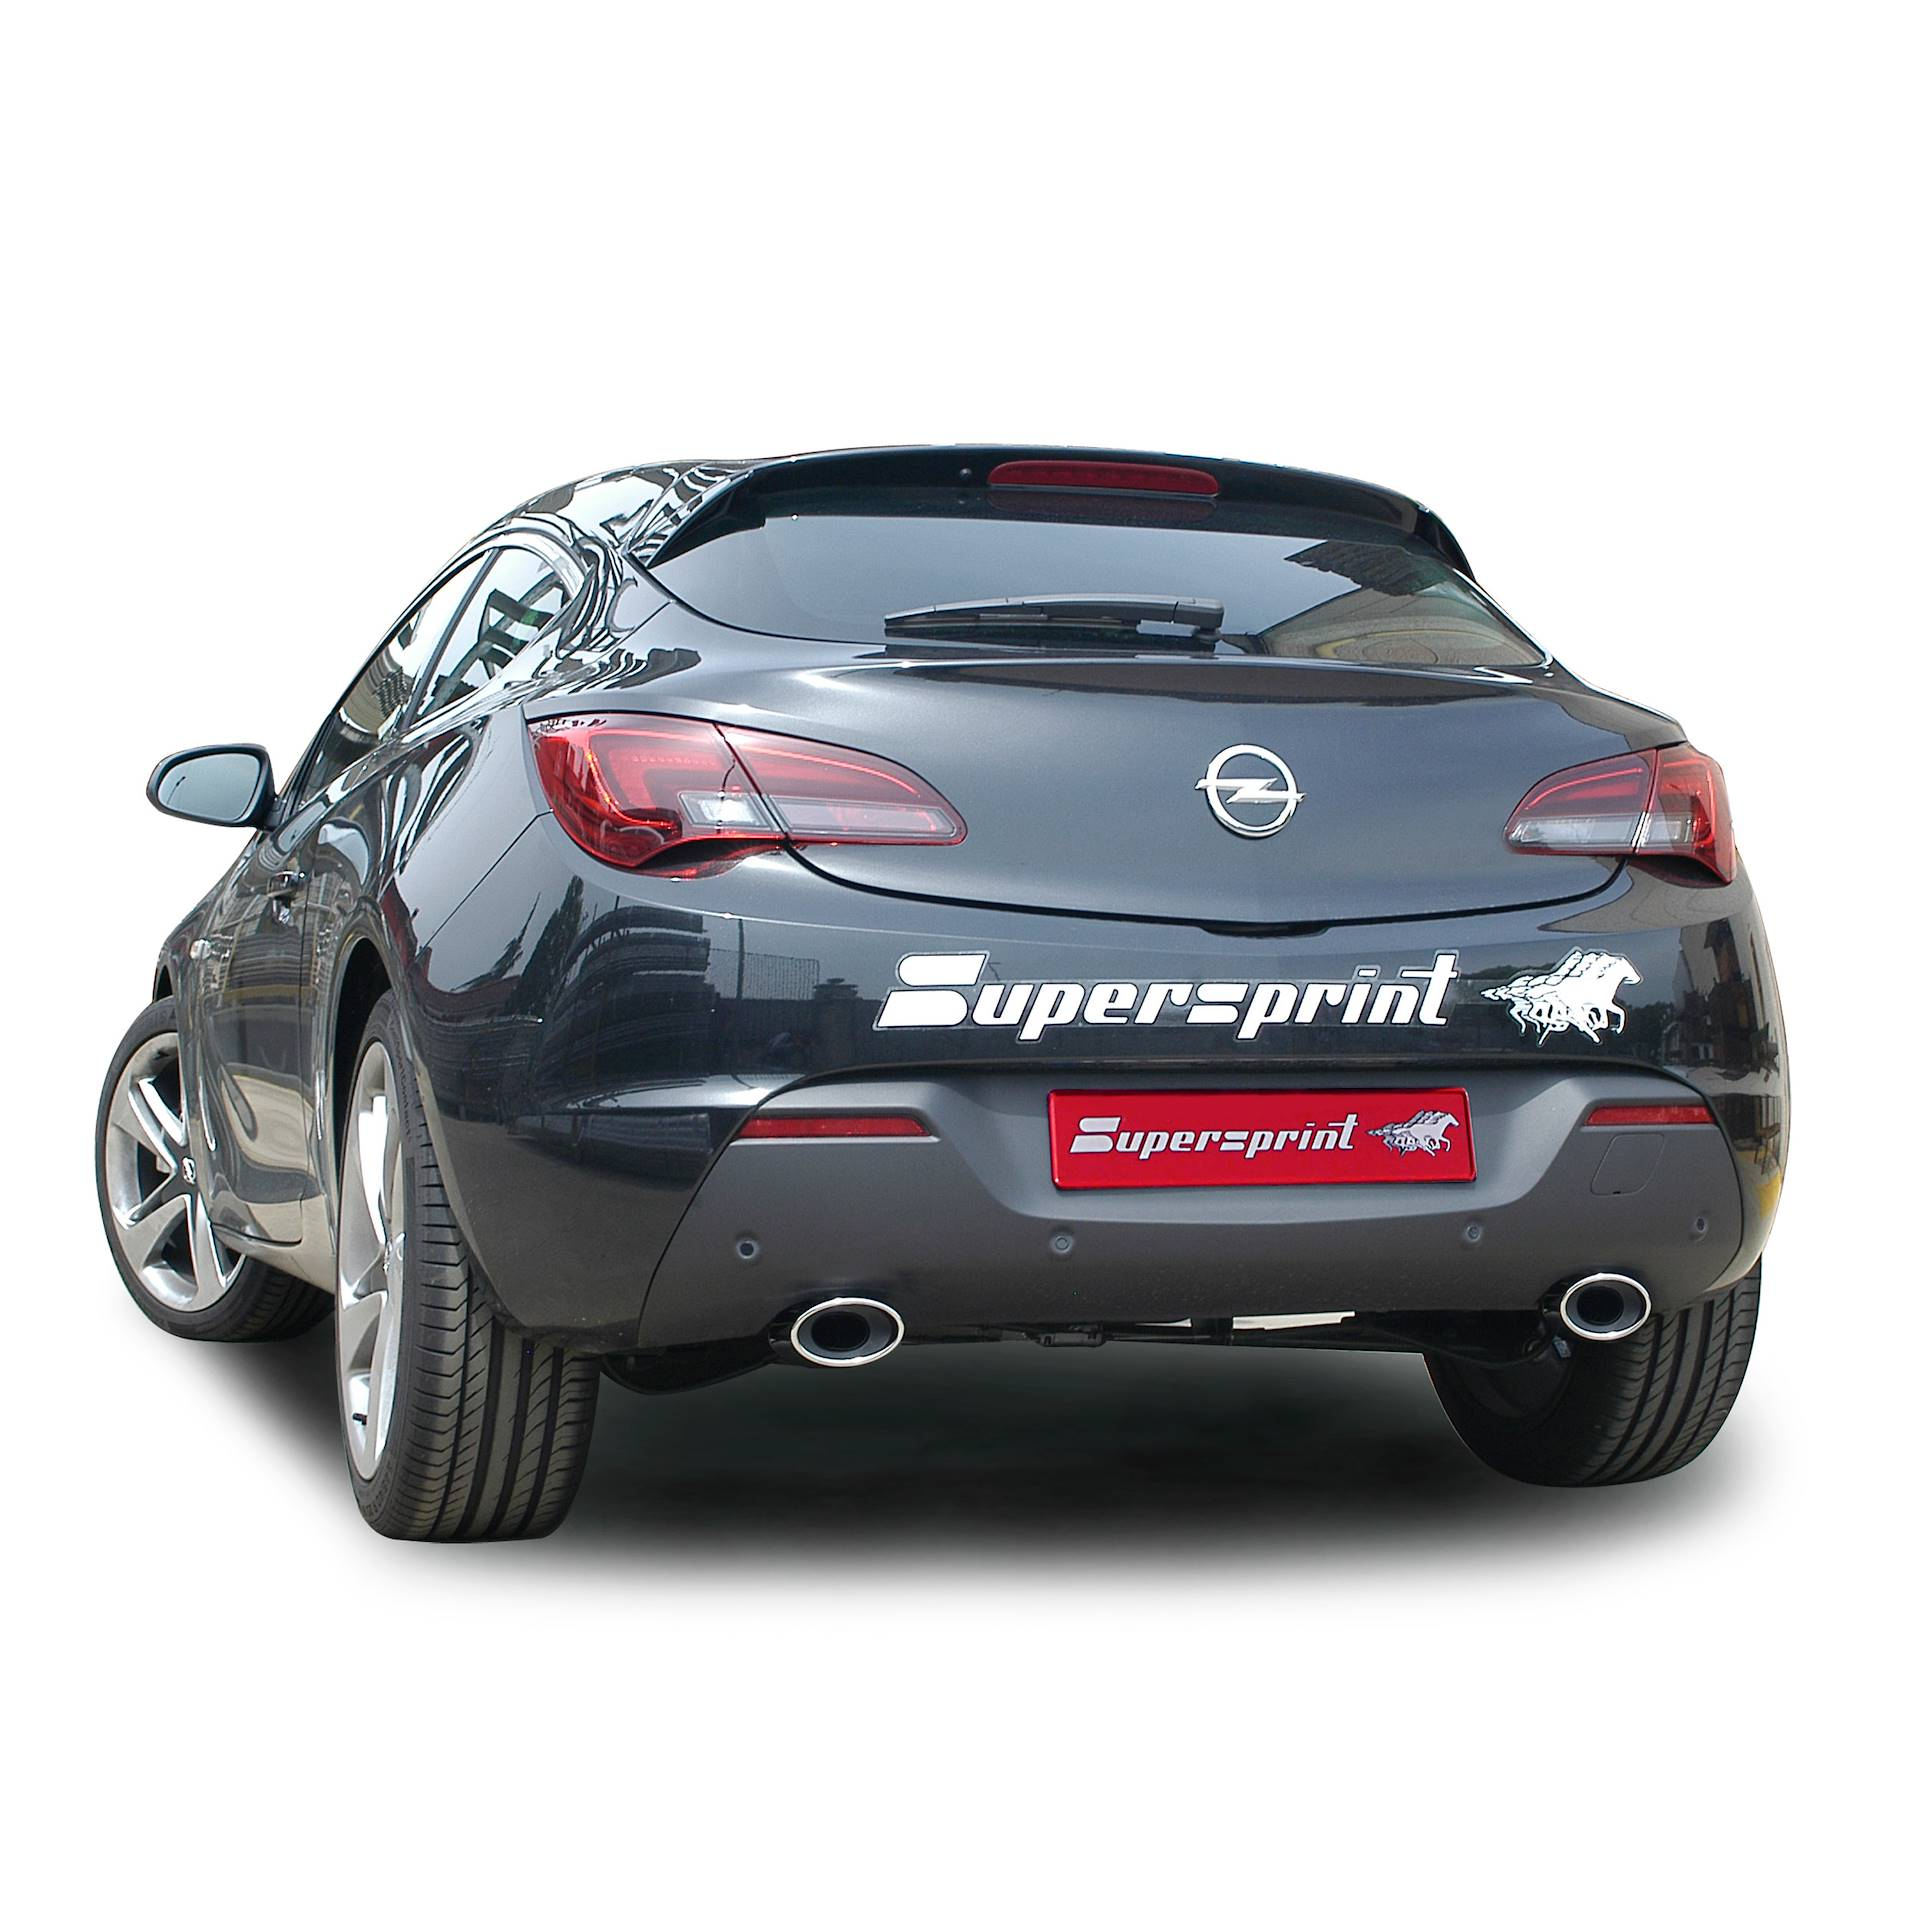 Opel - OPEL ASTRA J GTC 1.6i Turbo (180 PS) 2011 ->